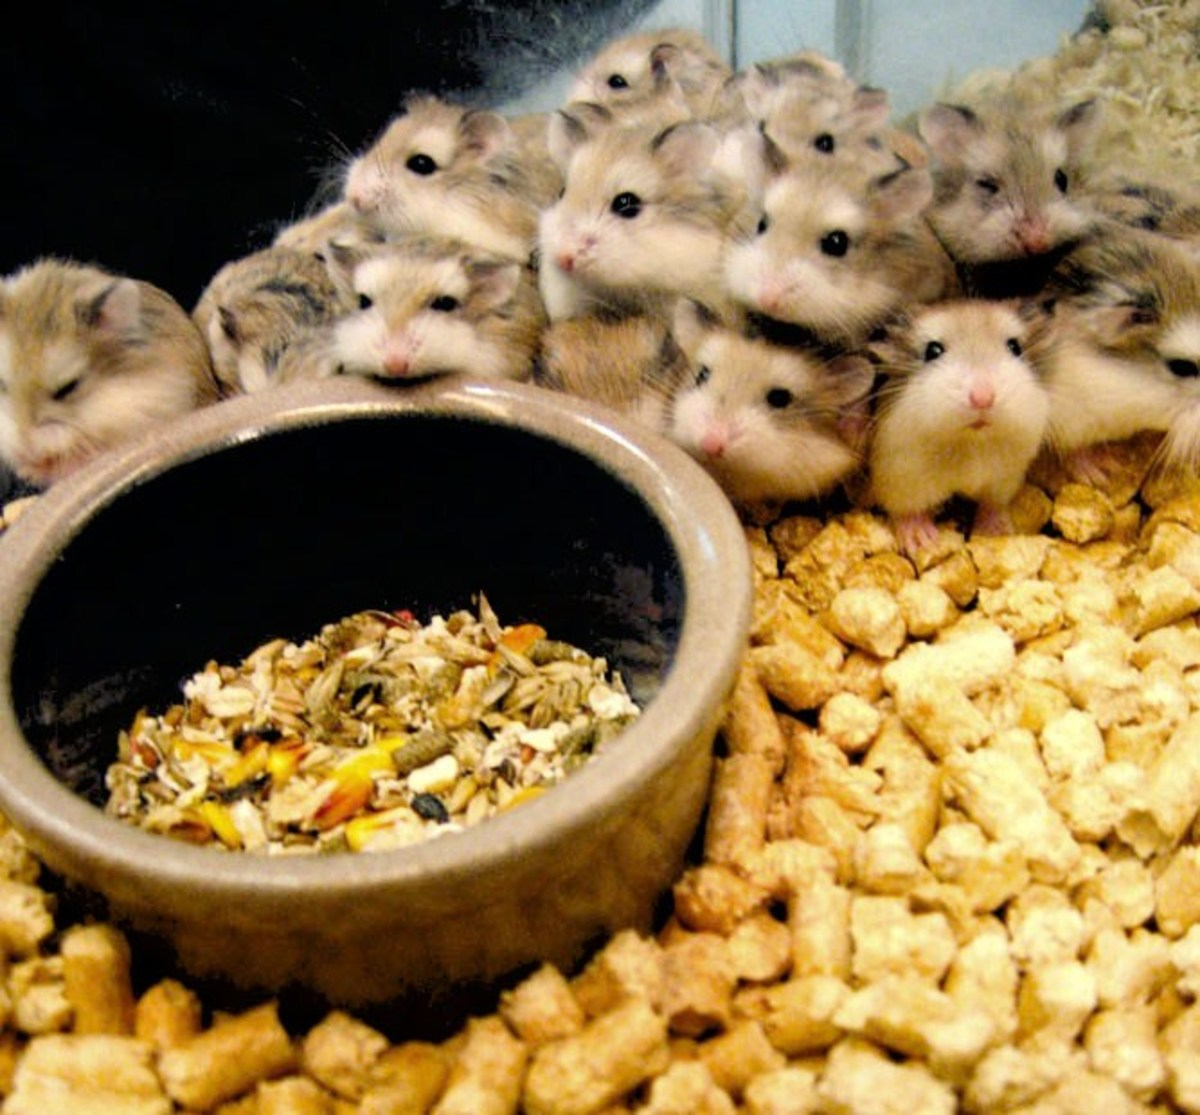 Rodents breed profusely